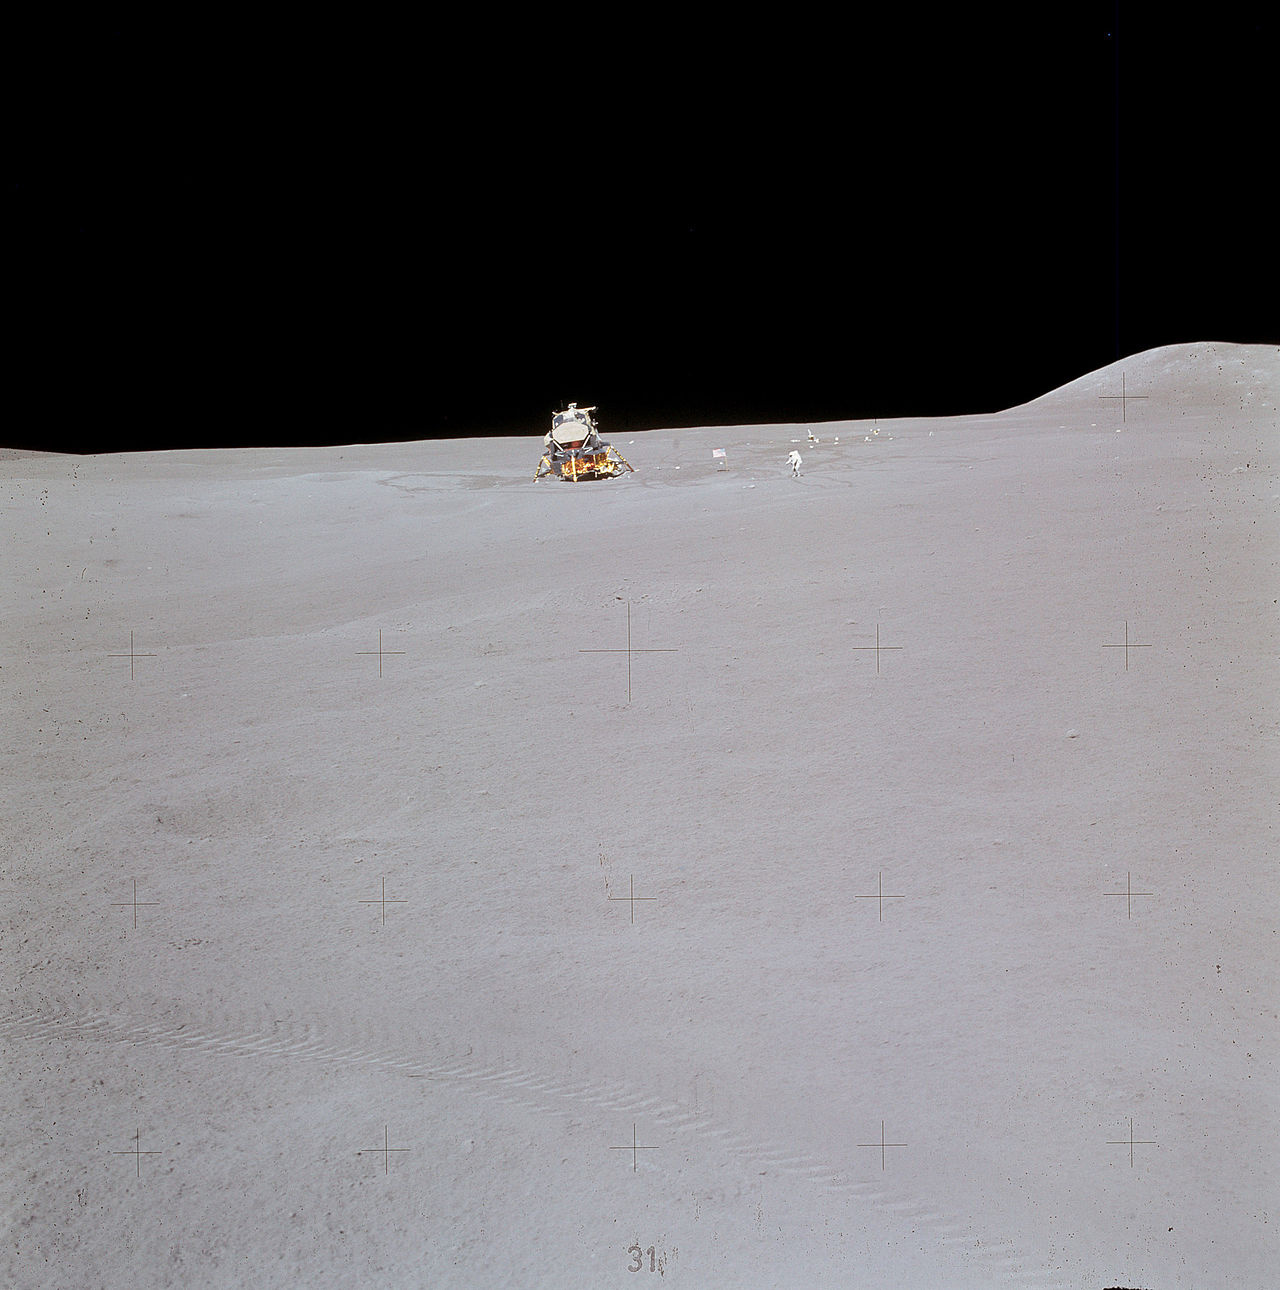 Apollo_15_Irwin_and_LM_from_the_VIP_site.jpg